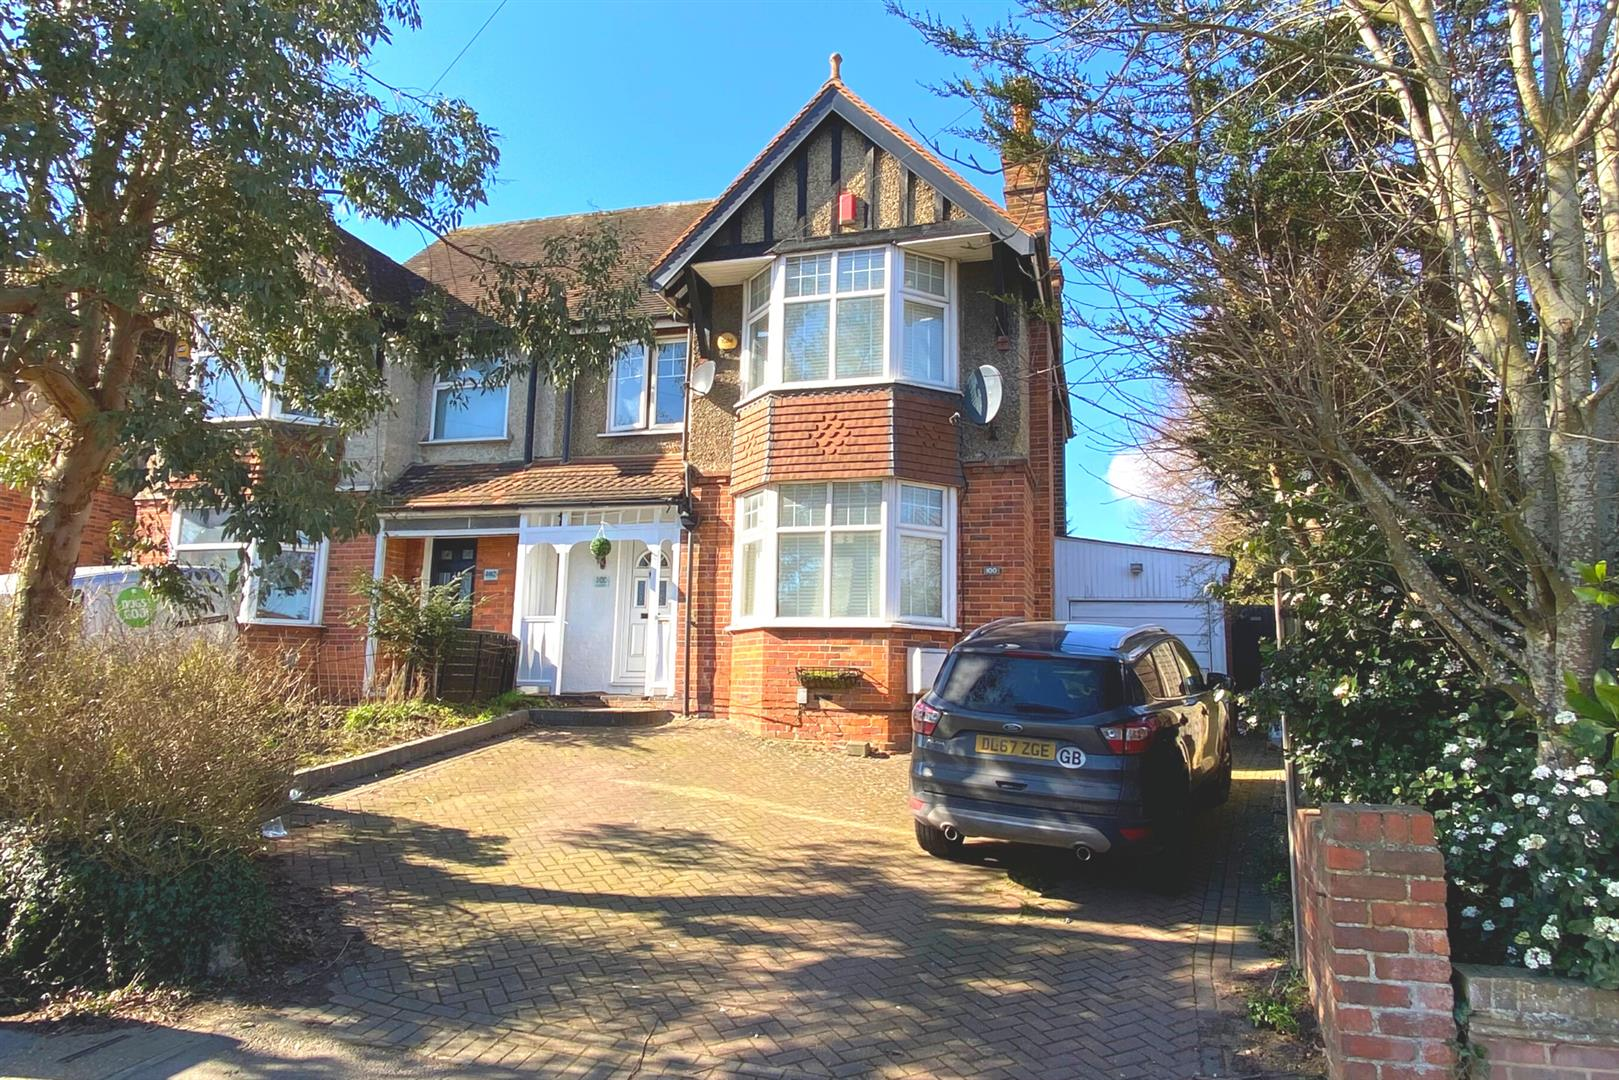 3 bed semi-detached for sale, RG30